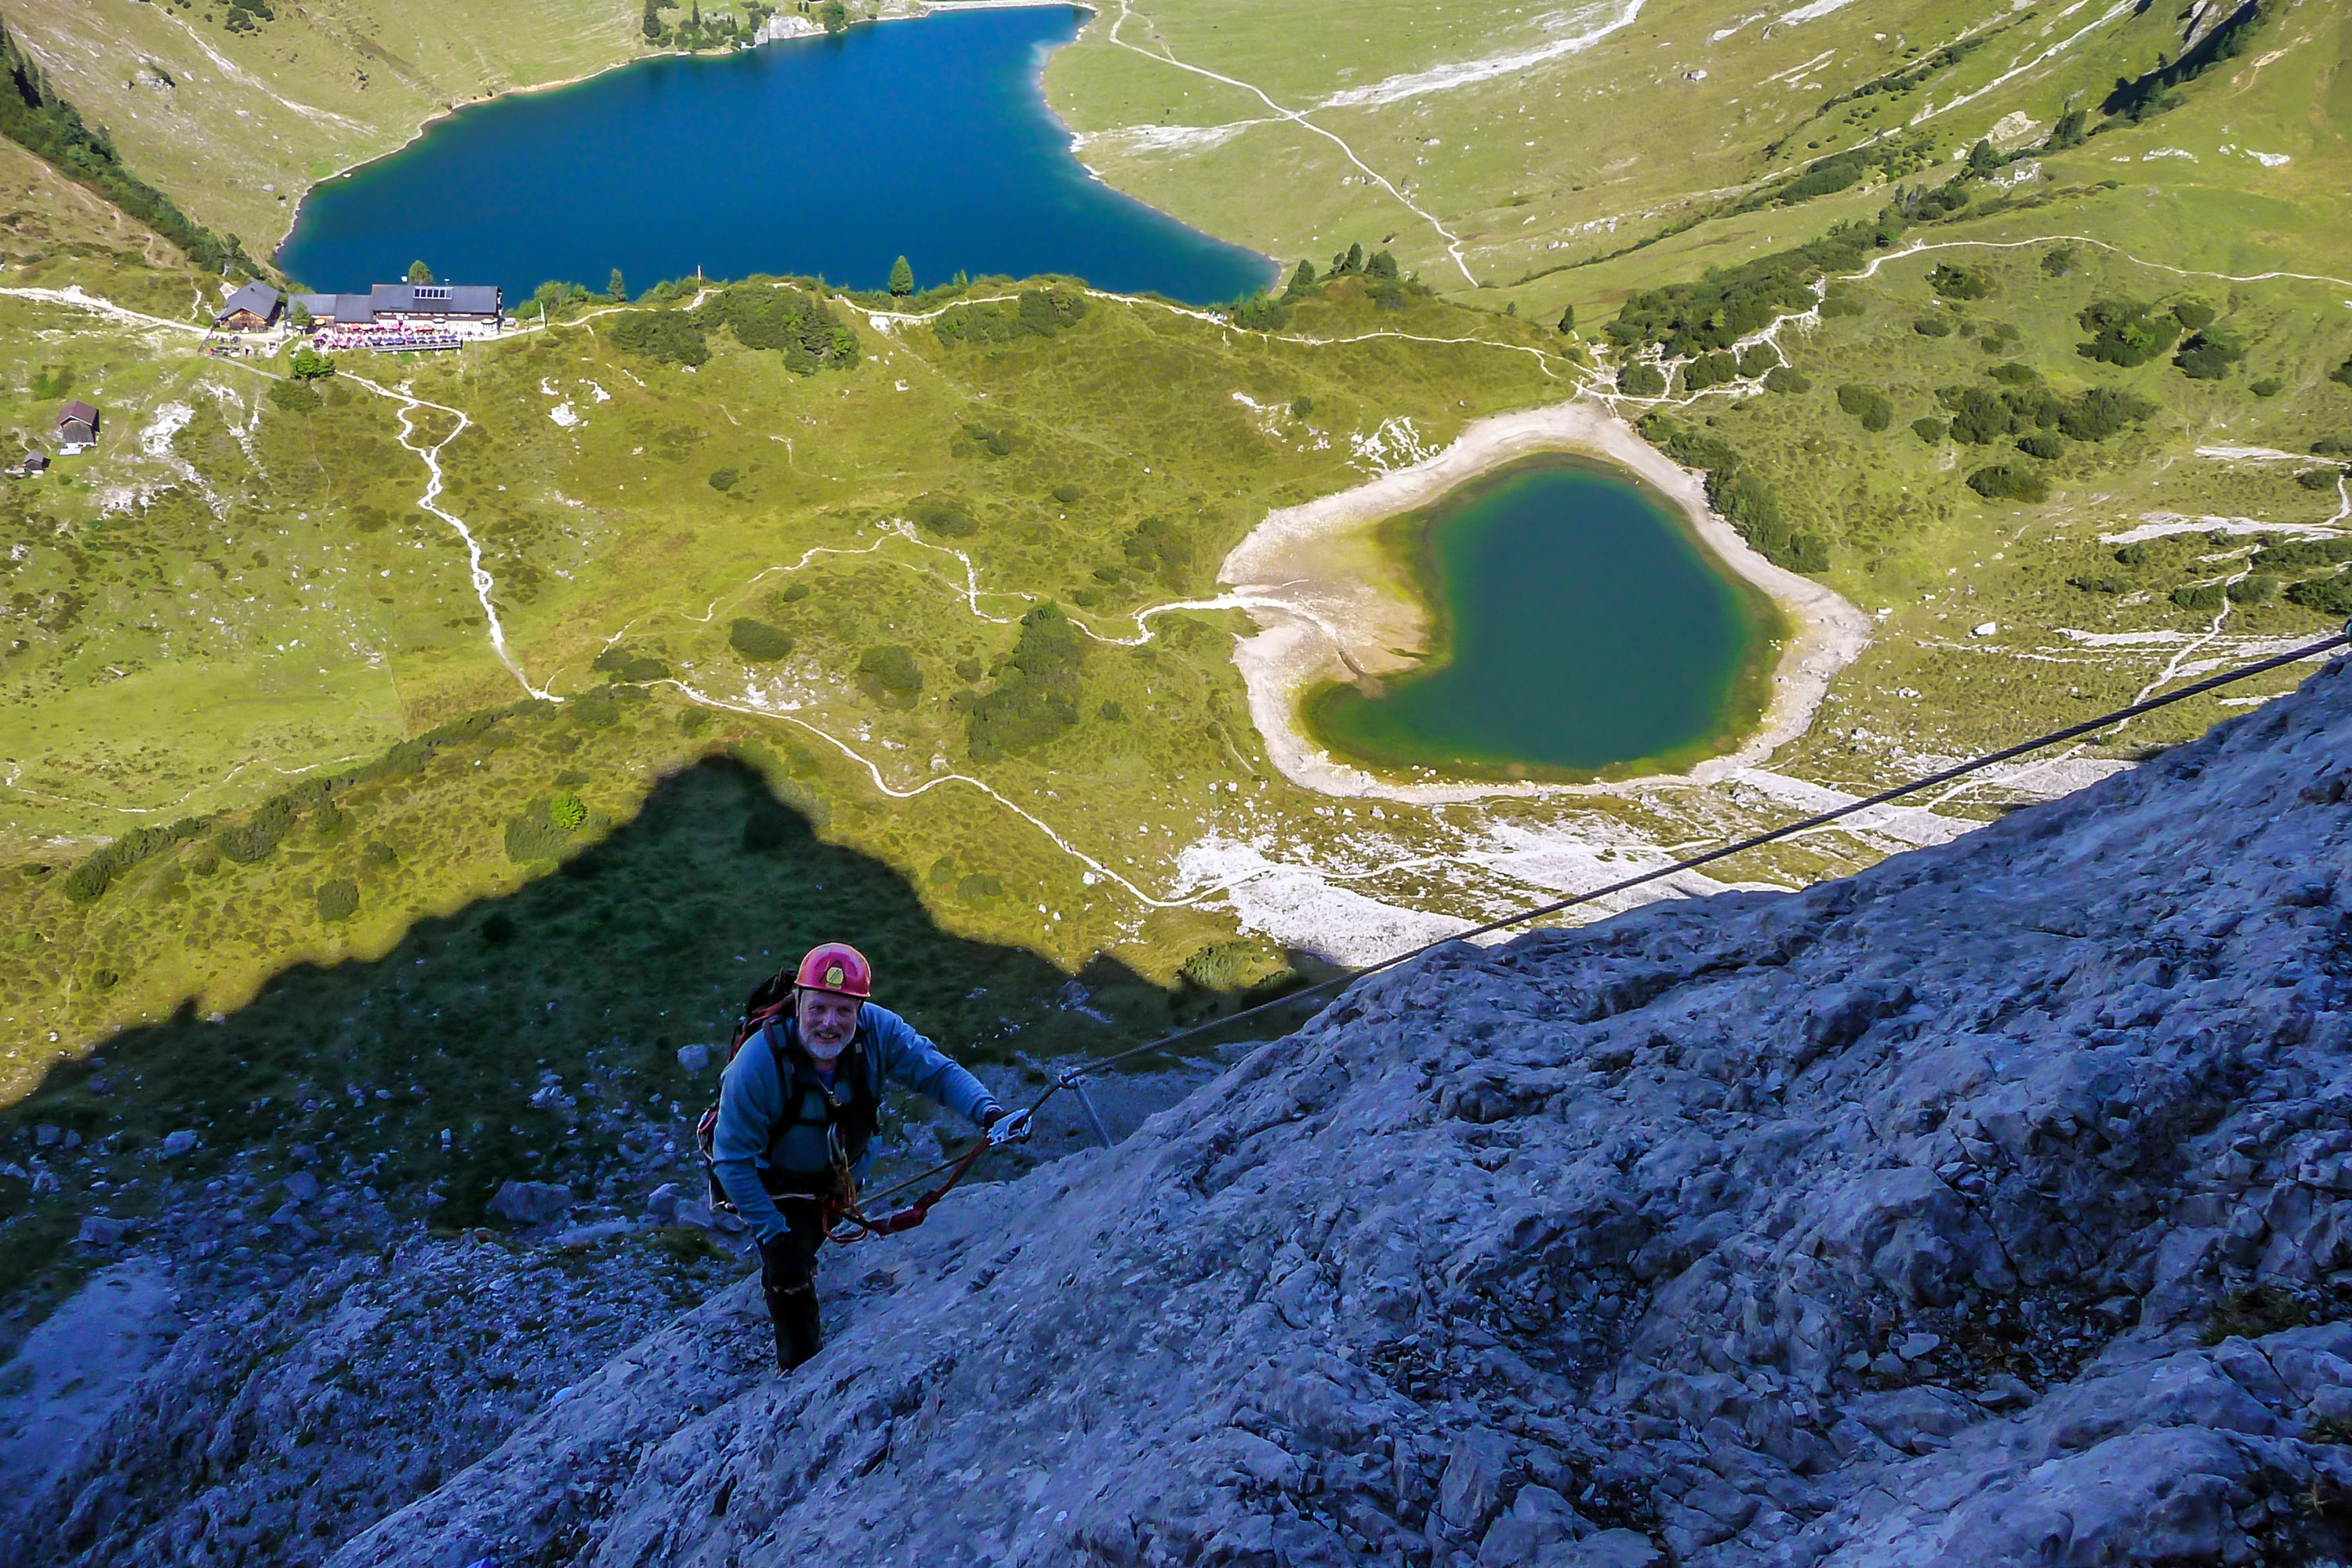 Klettersteig Lachenspitze : Klettersteig lachenspitze wgm picture